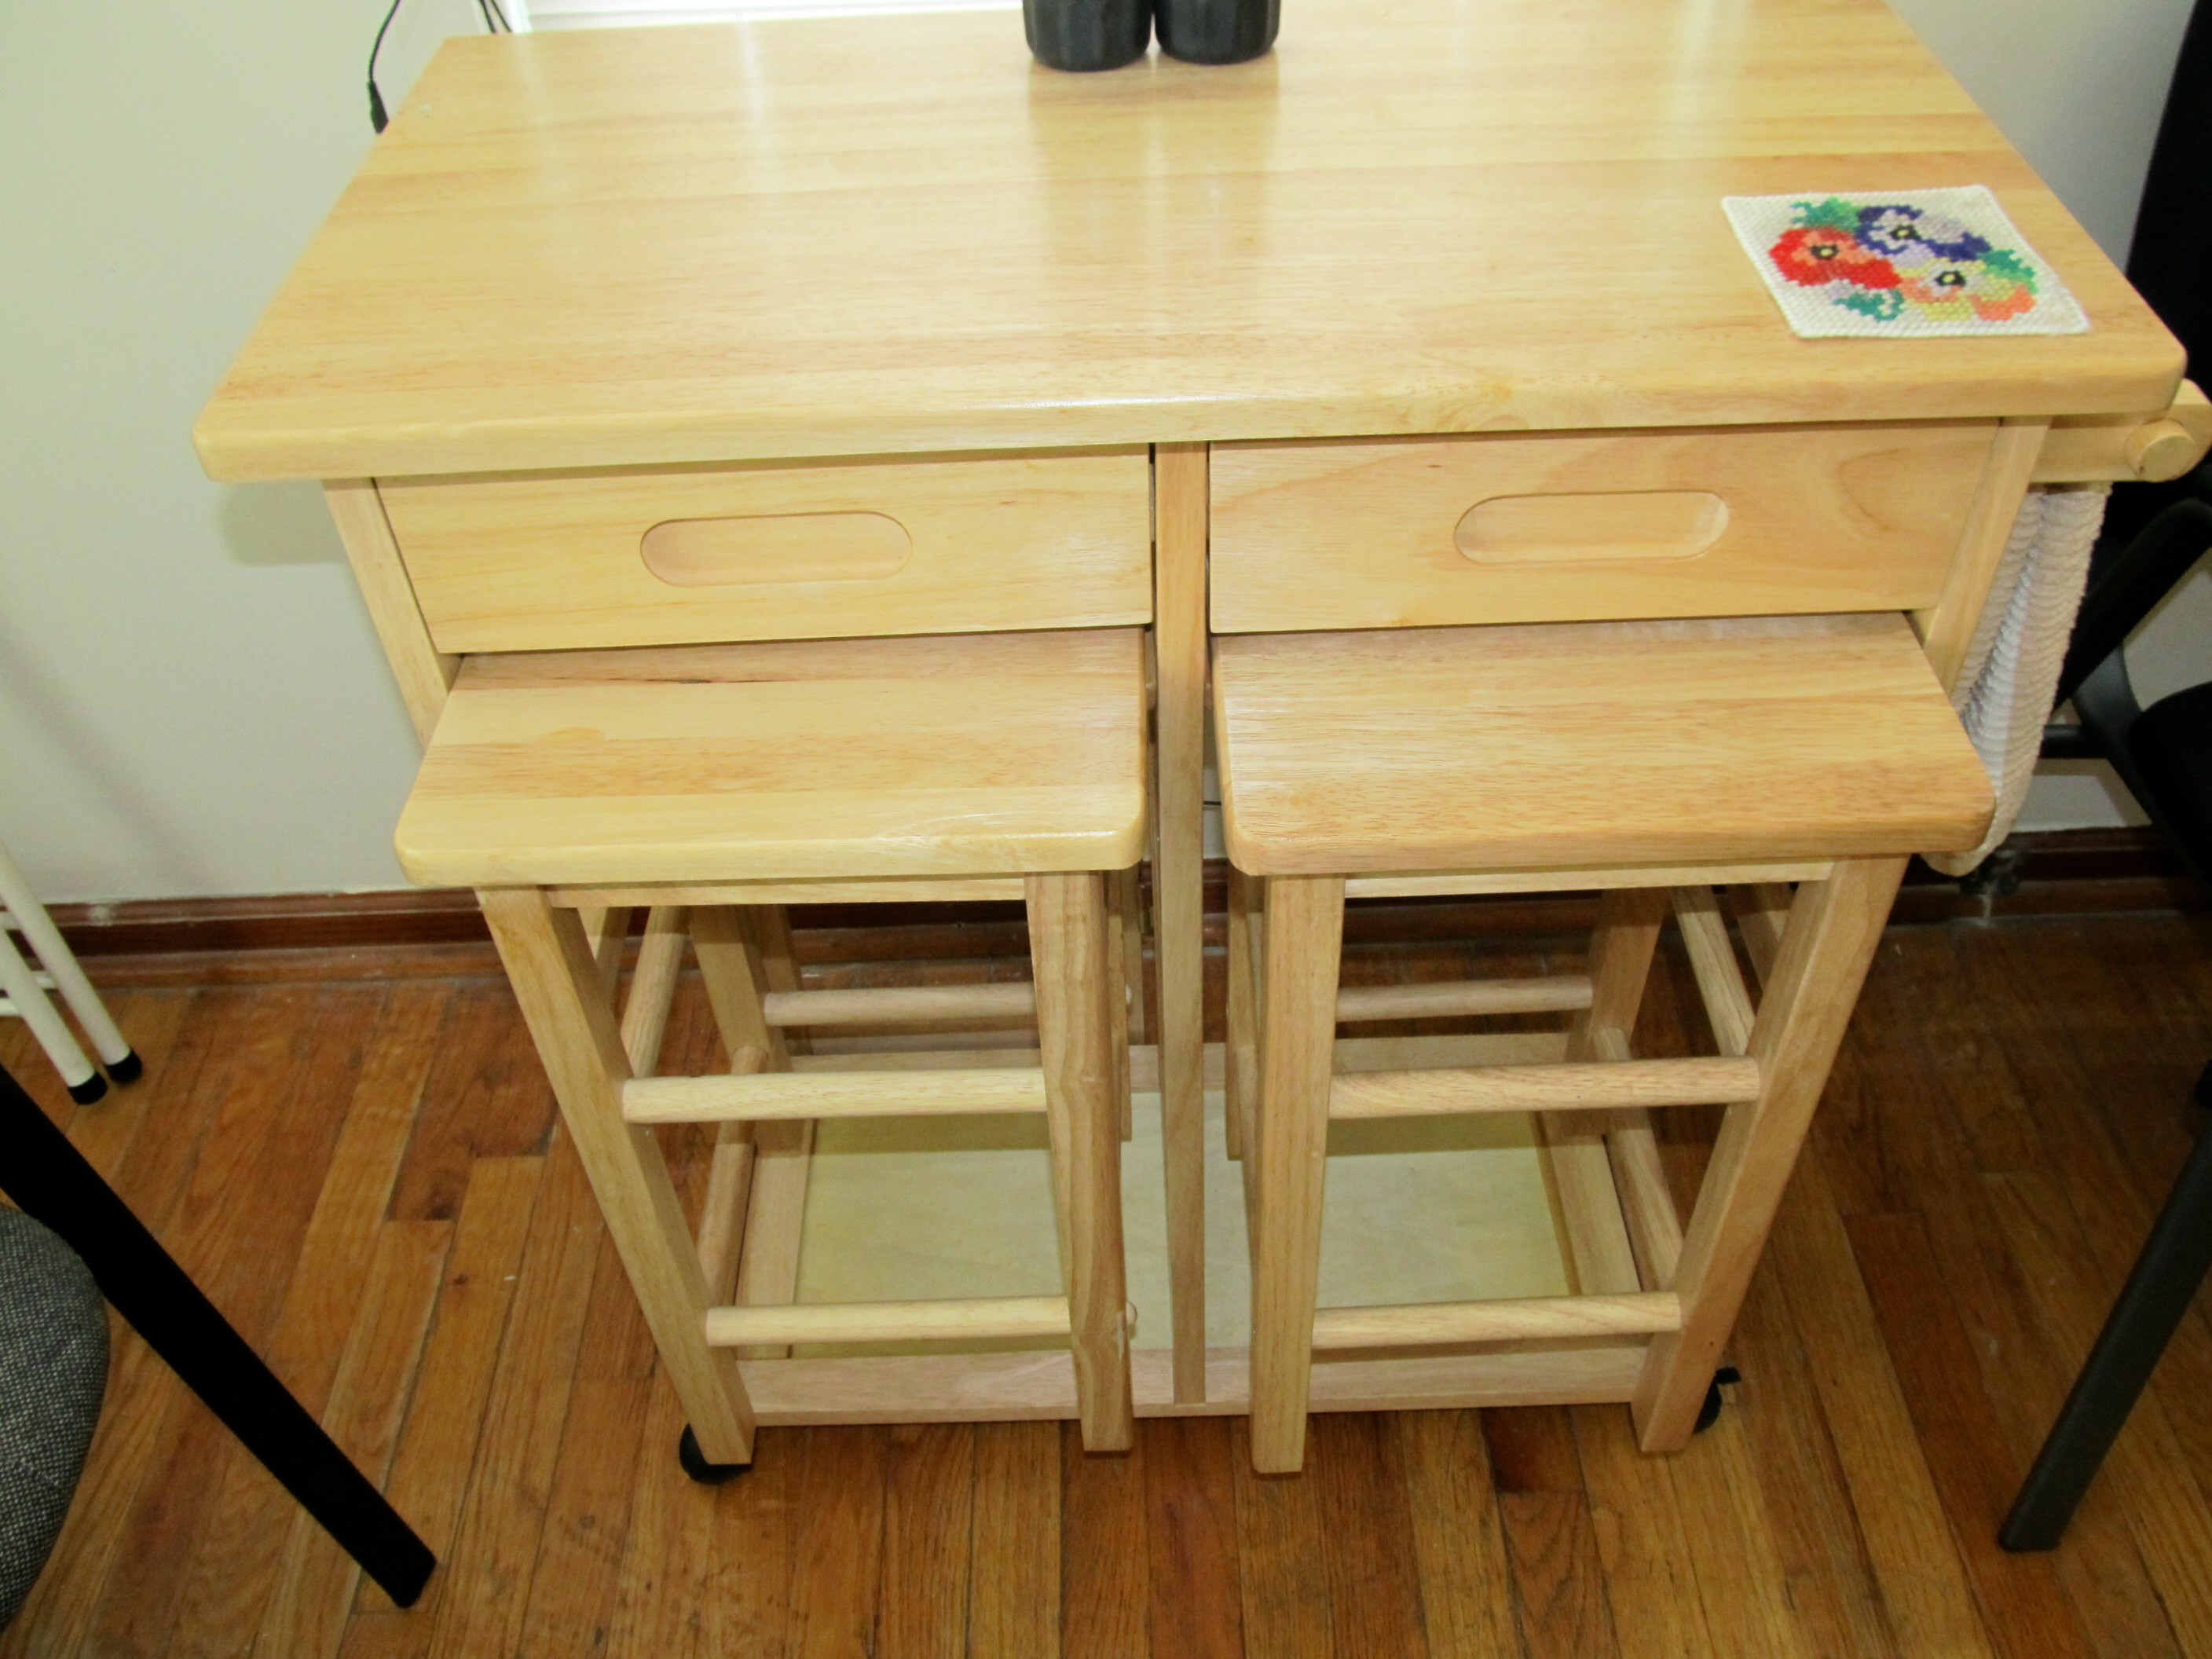 Kitchen Table with Stools Underneath